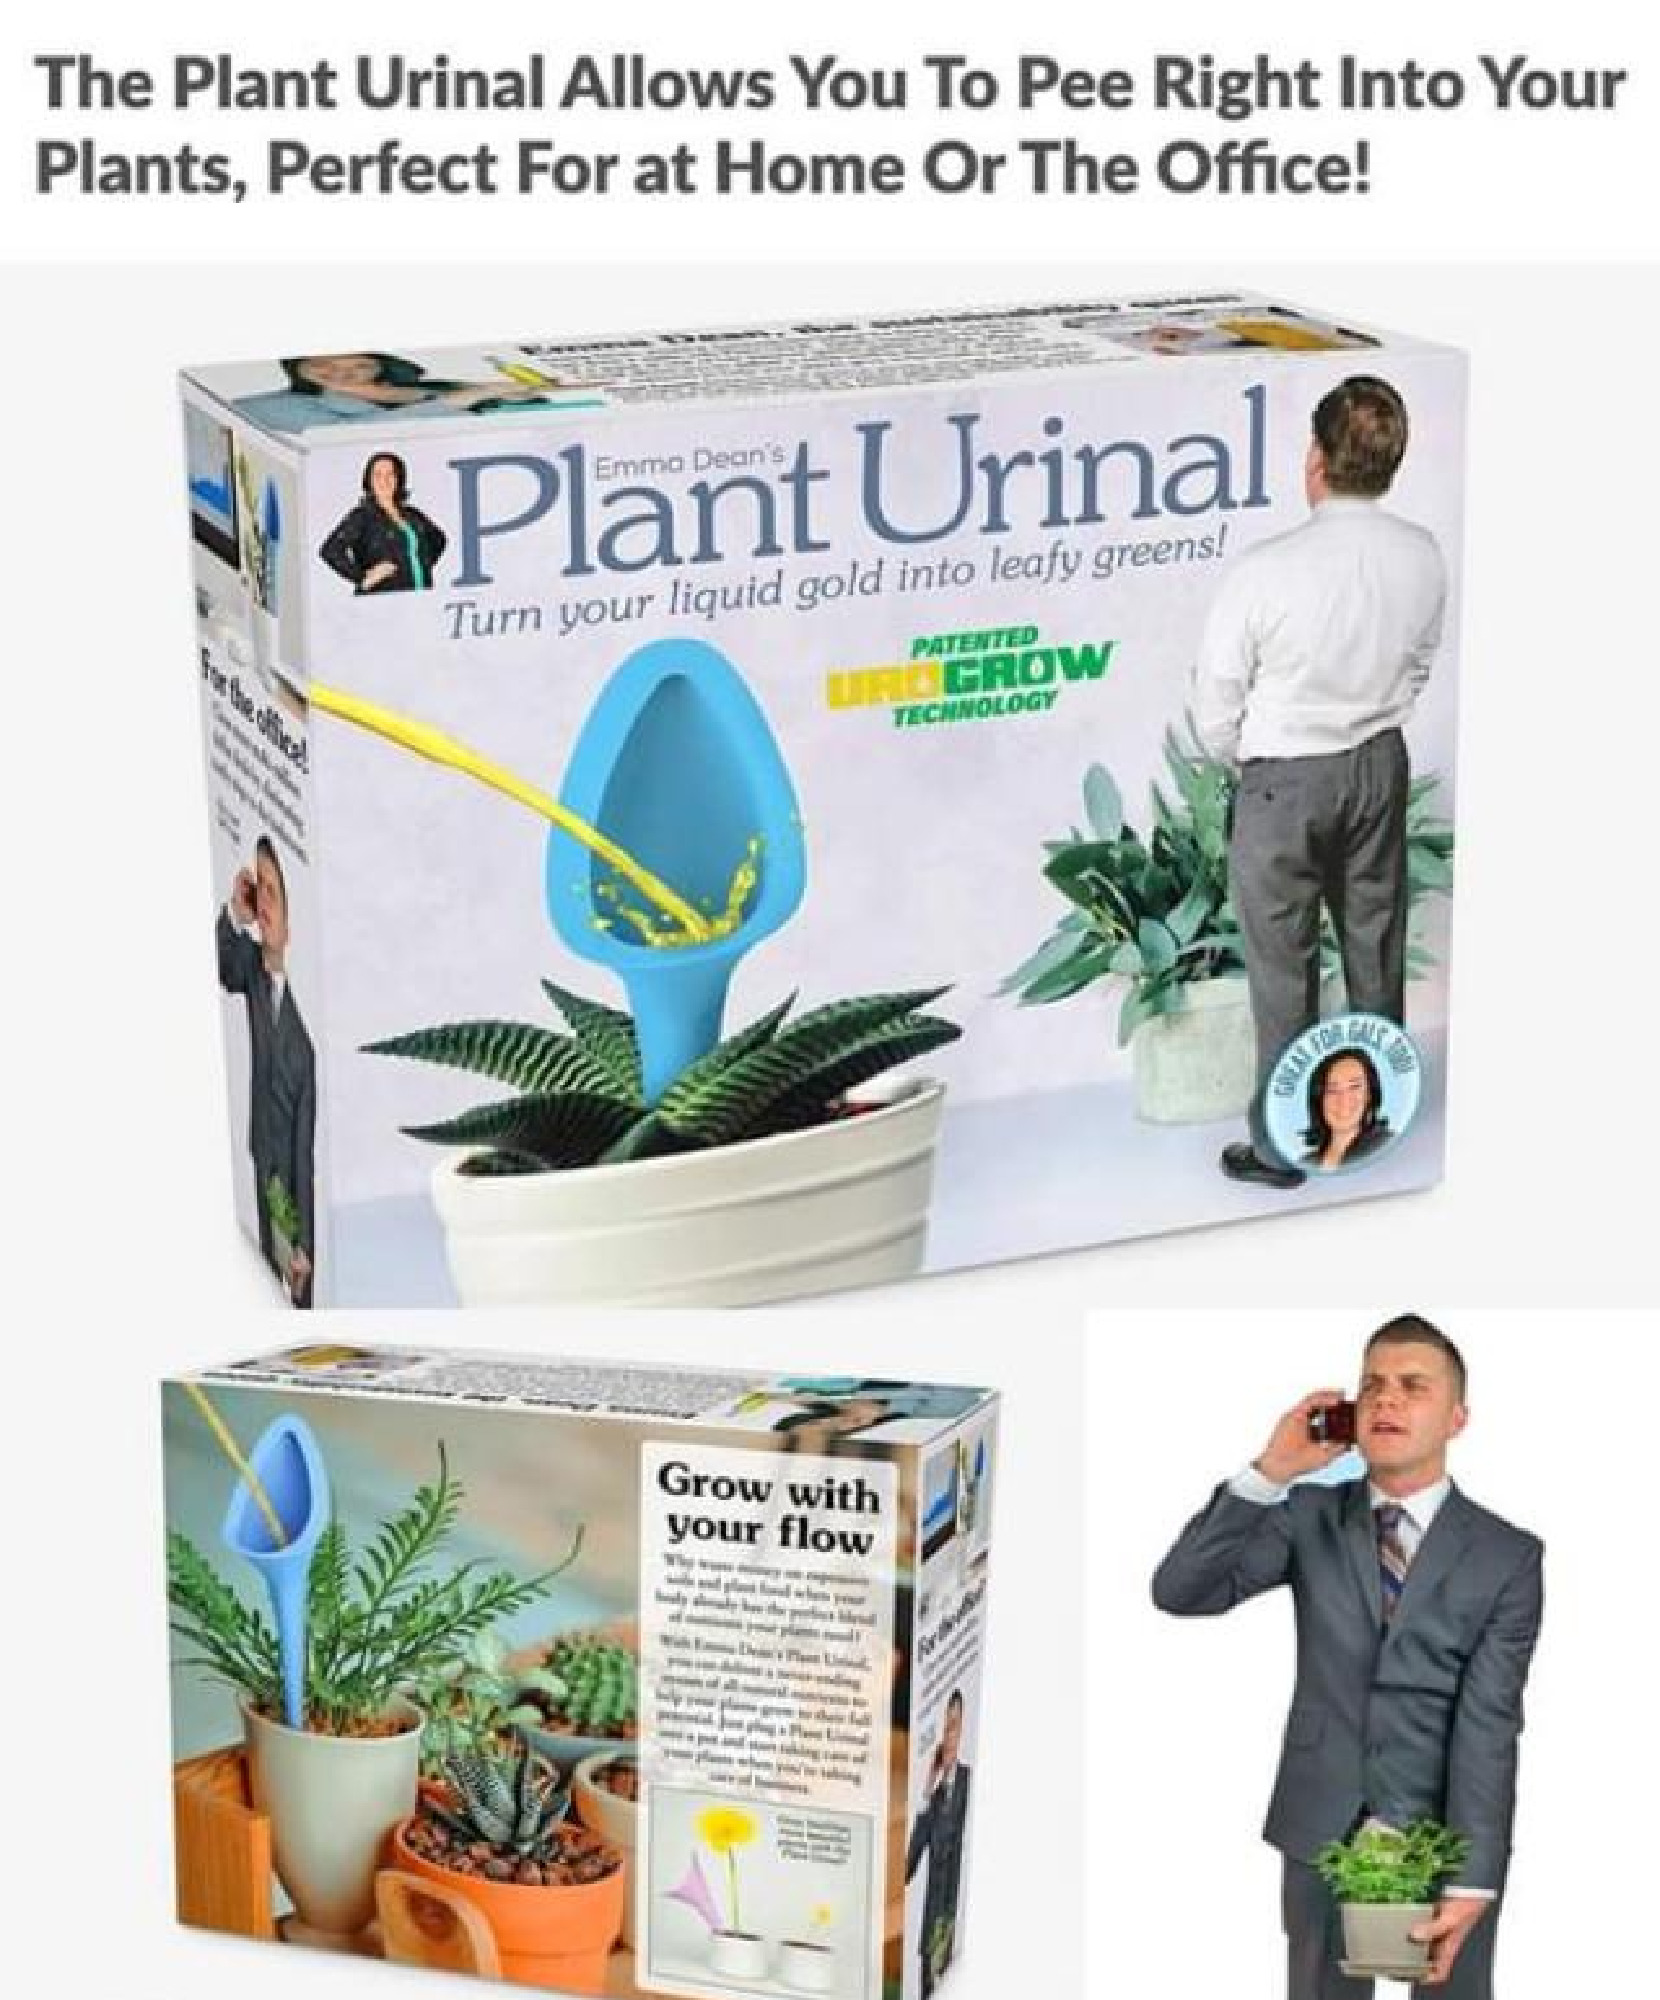 Plant Urinal – turn your liquid gold into leafy greens!